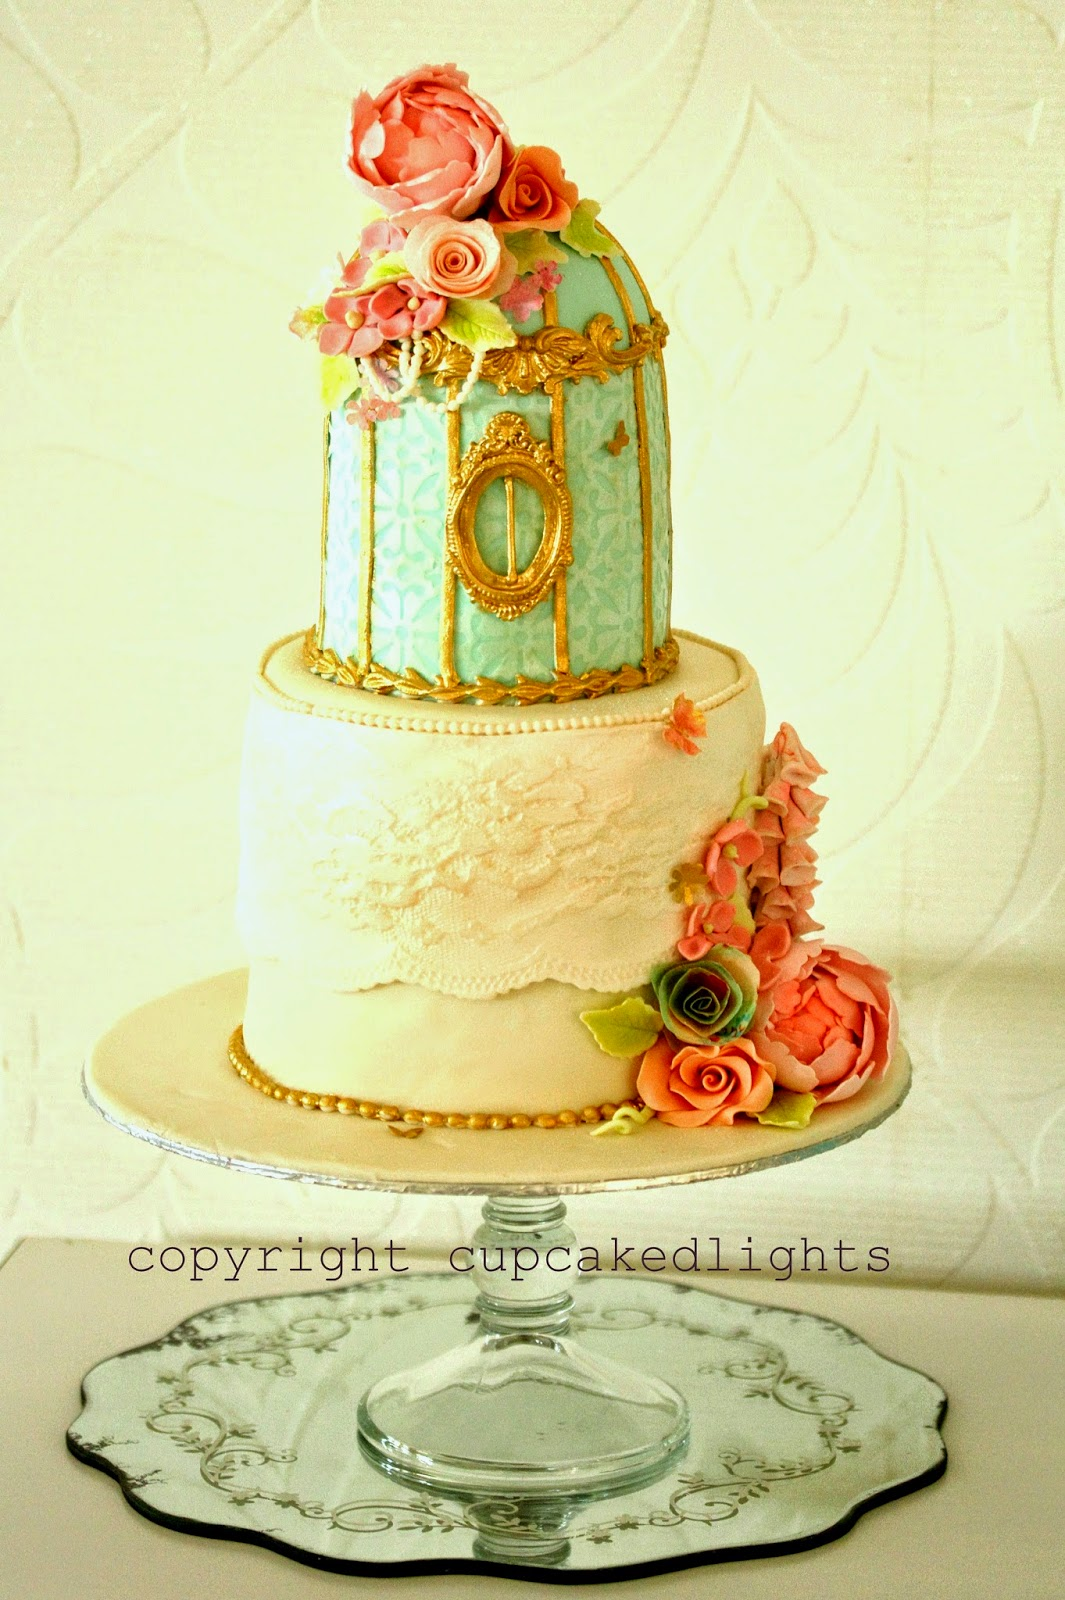 cupcake d\'lights {South Africa}: mini birdcage cake